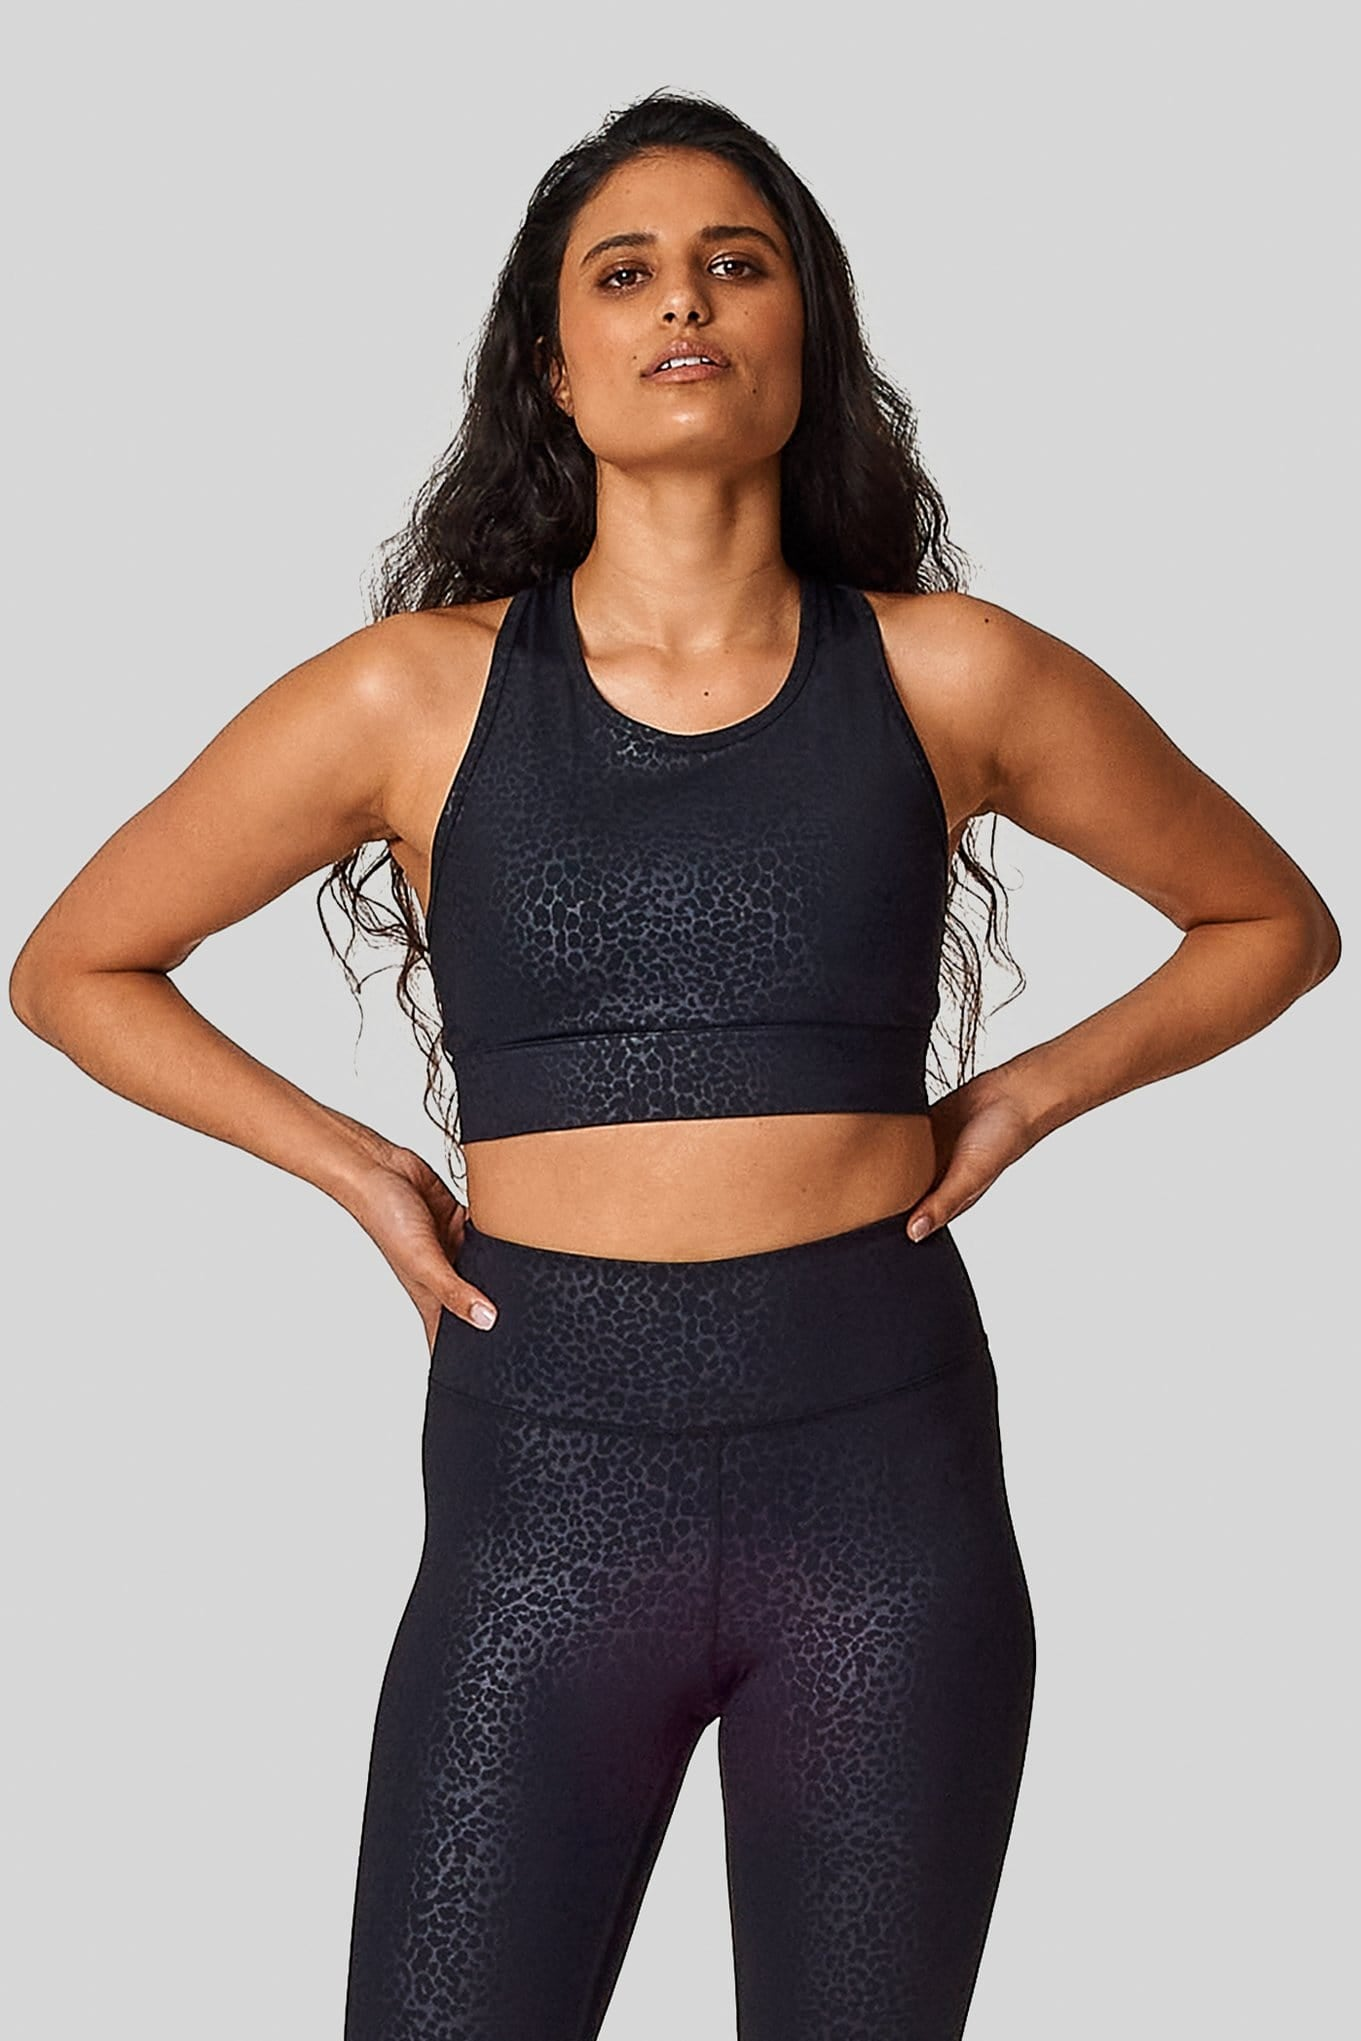 A matching cheetah sports bras & leggings set on a woman with her hands on her hips.